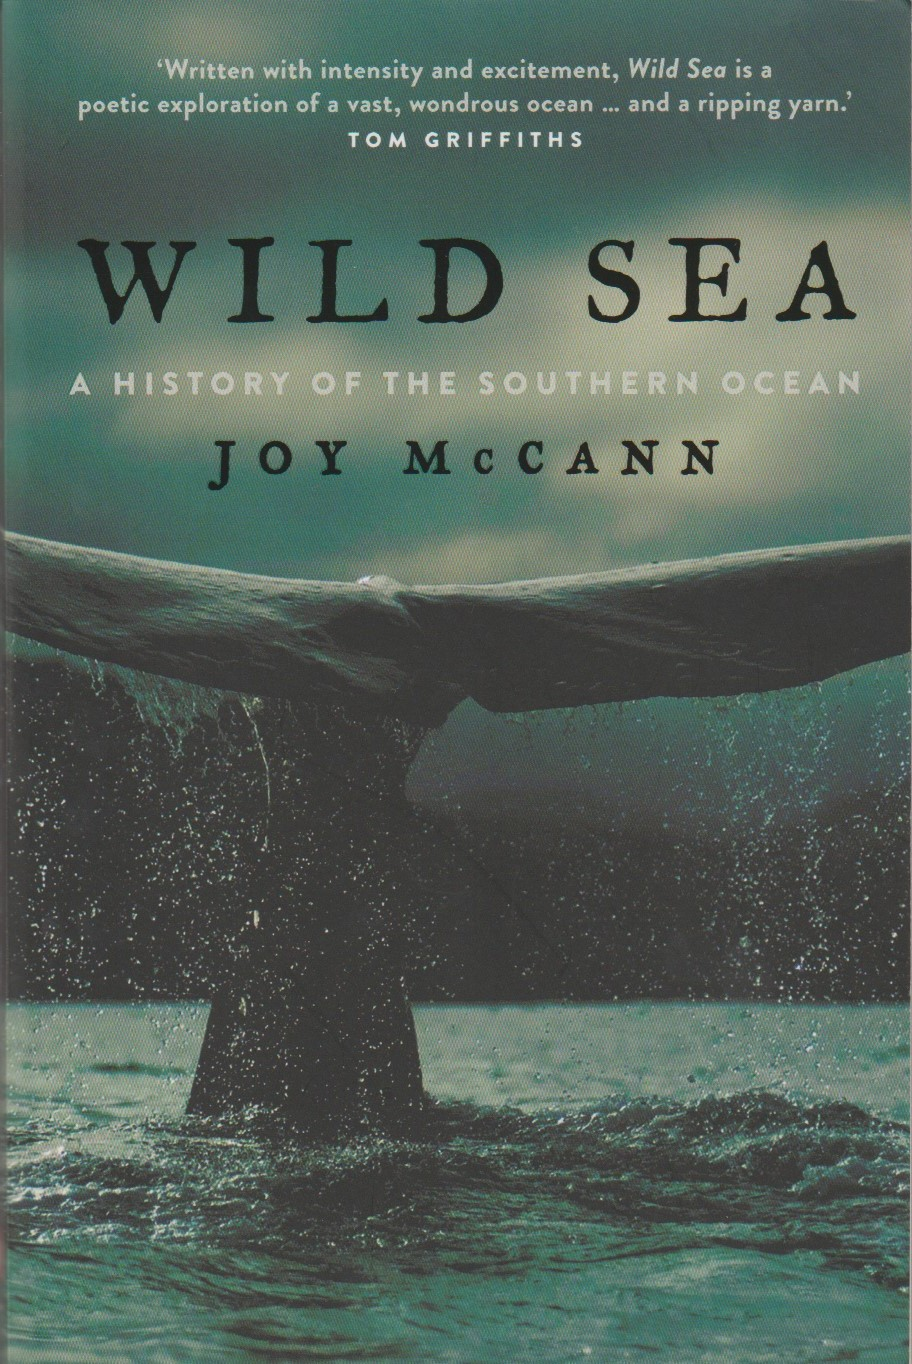 Wild Sea - A history of the Southern Ocean